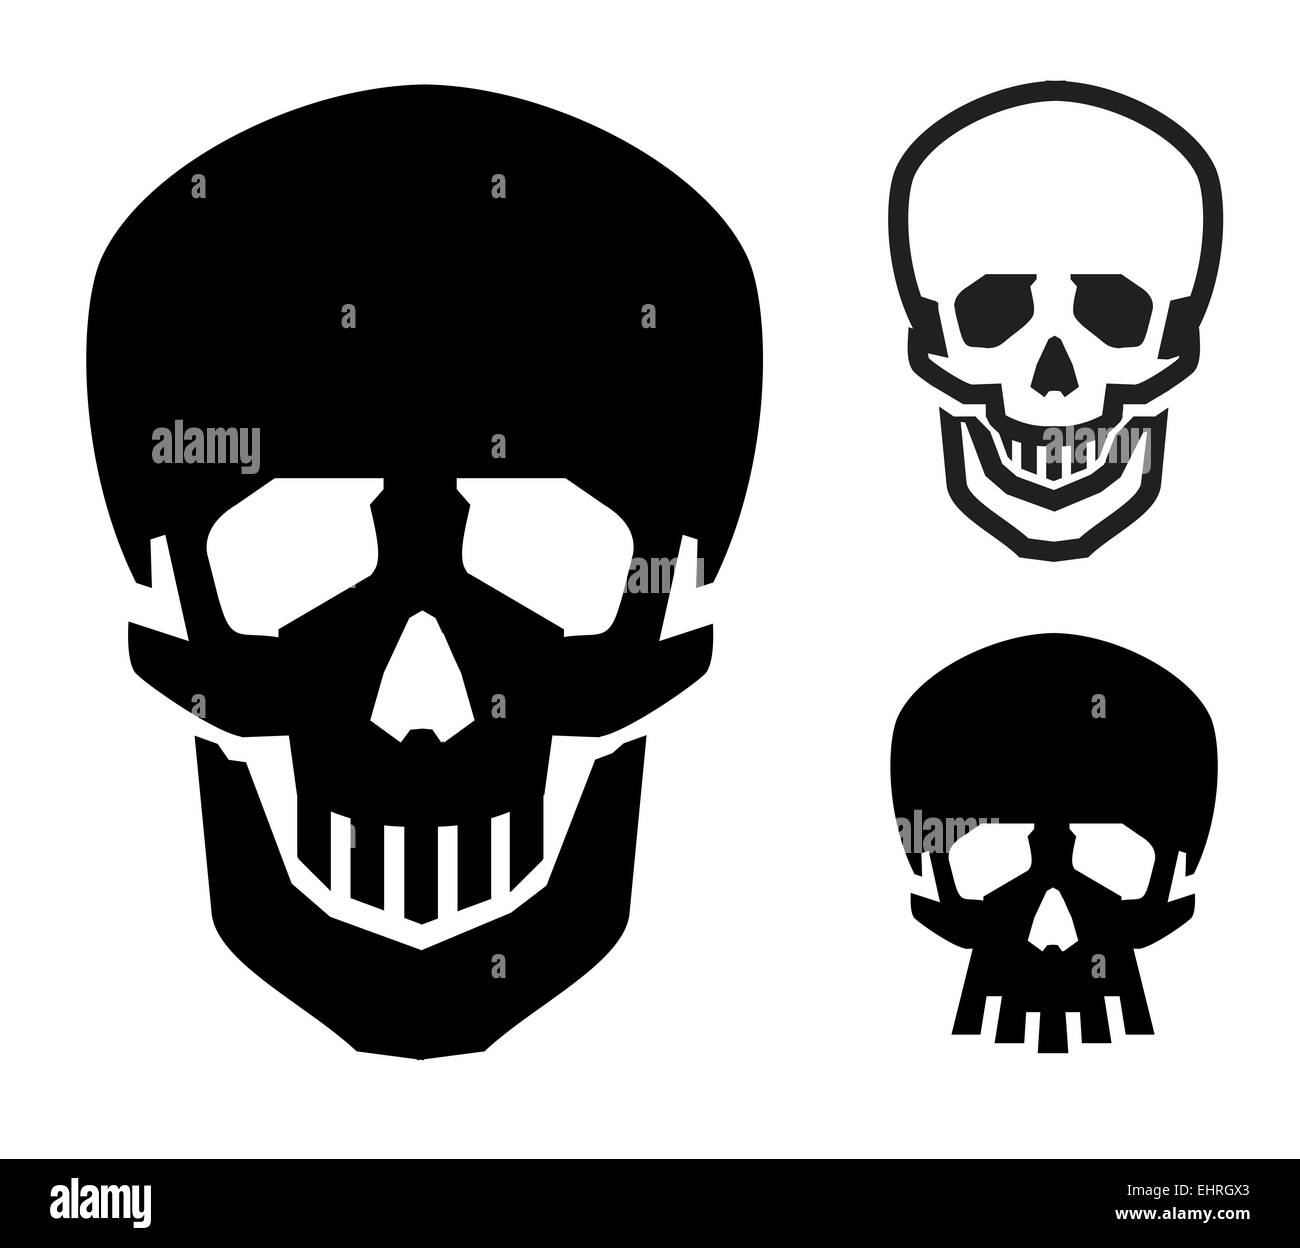 skull vector logo design template. Jolly Roger or zombie icon. - Stock Image